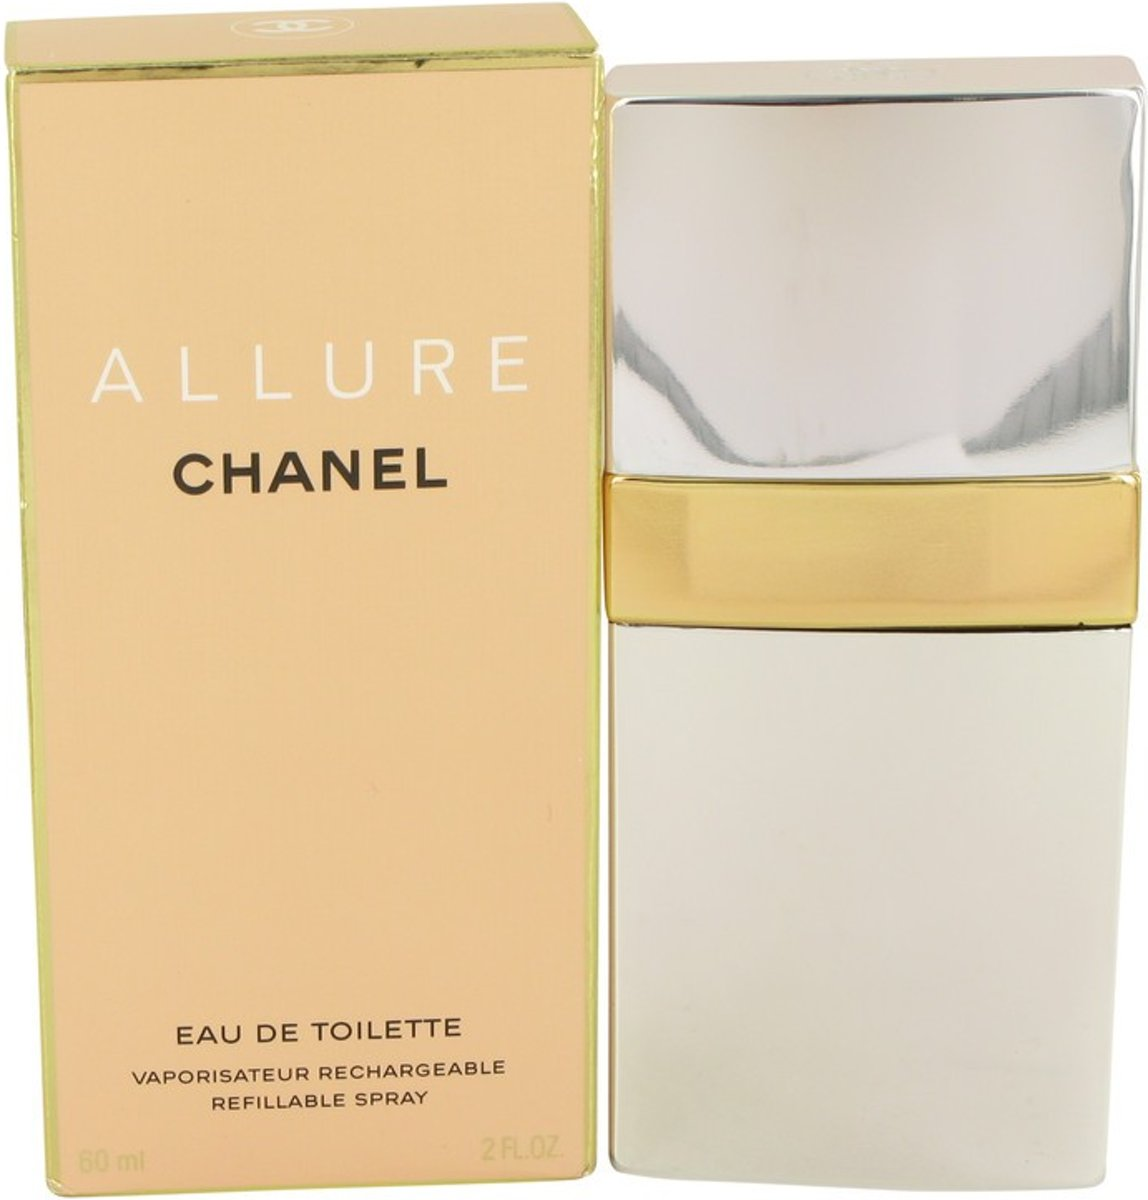 Chanel Allure Eau de Toilette Navulbaar 60 ml